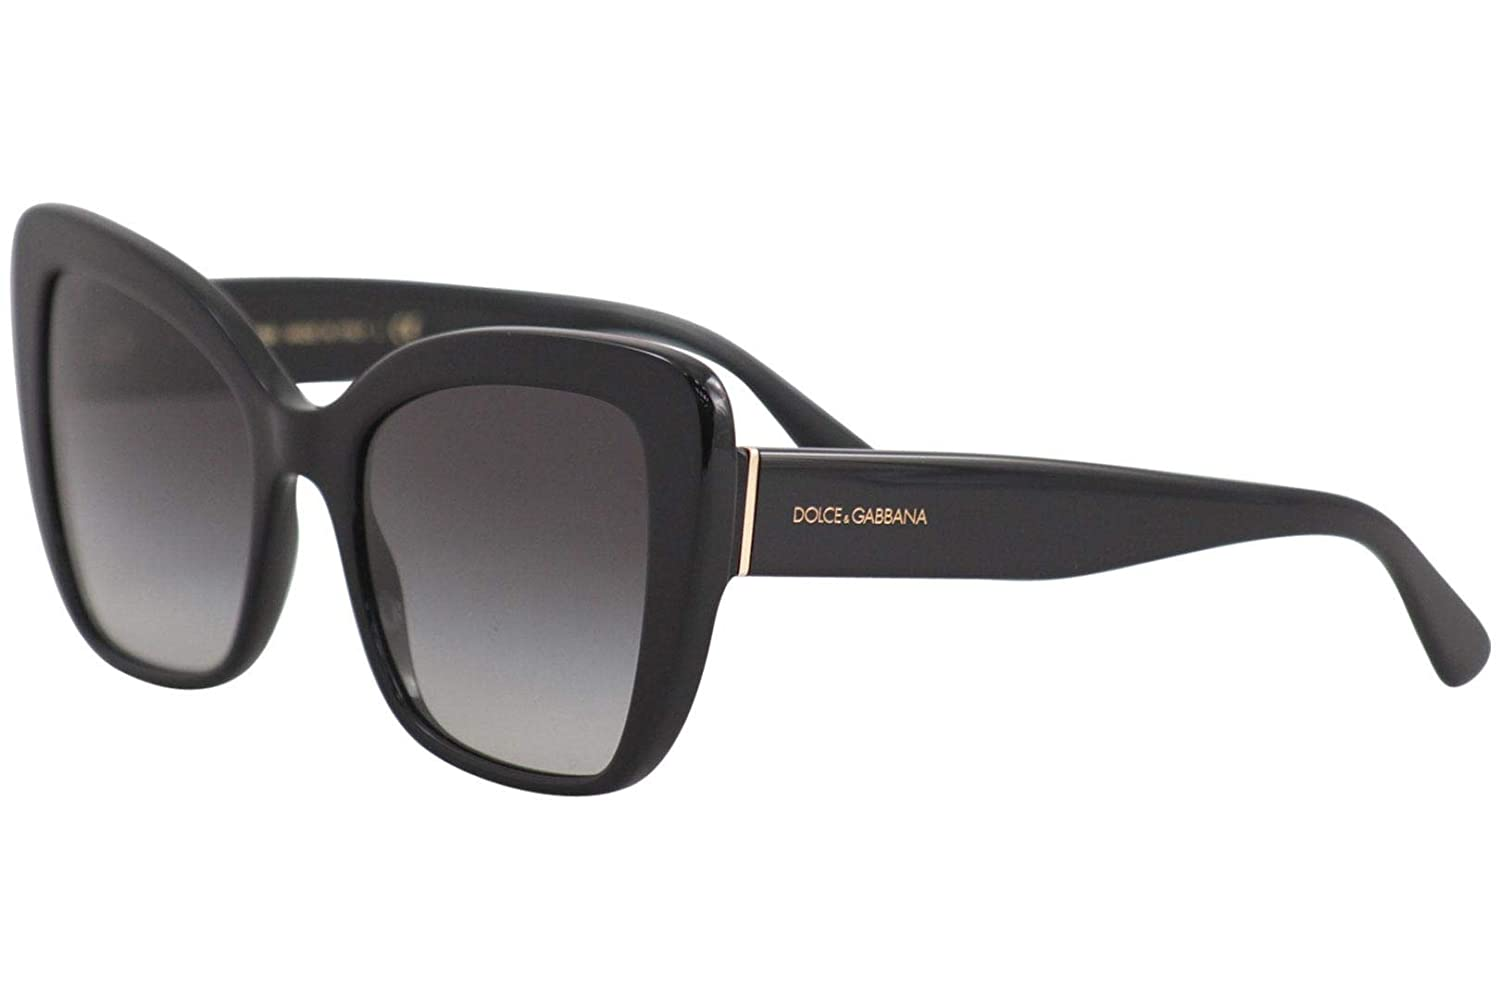 c70624aca2d8 Amazon.com  Dolce   Gabbana Women s 0DG4348 Black Grey Gradient One Size   Dolce and Gabbana  Clothing